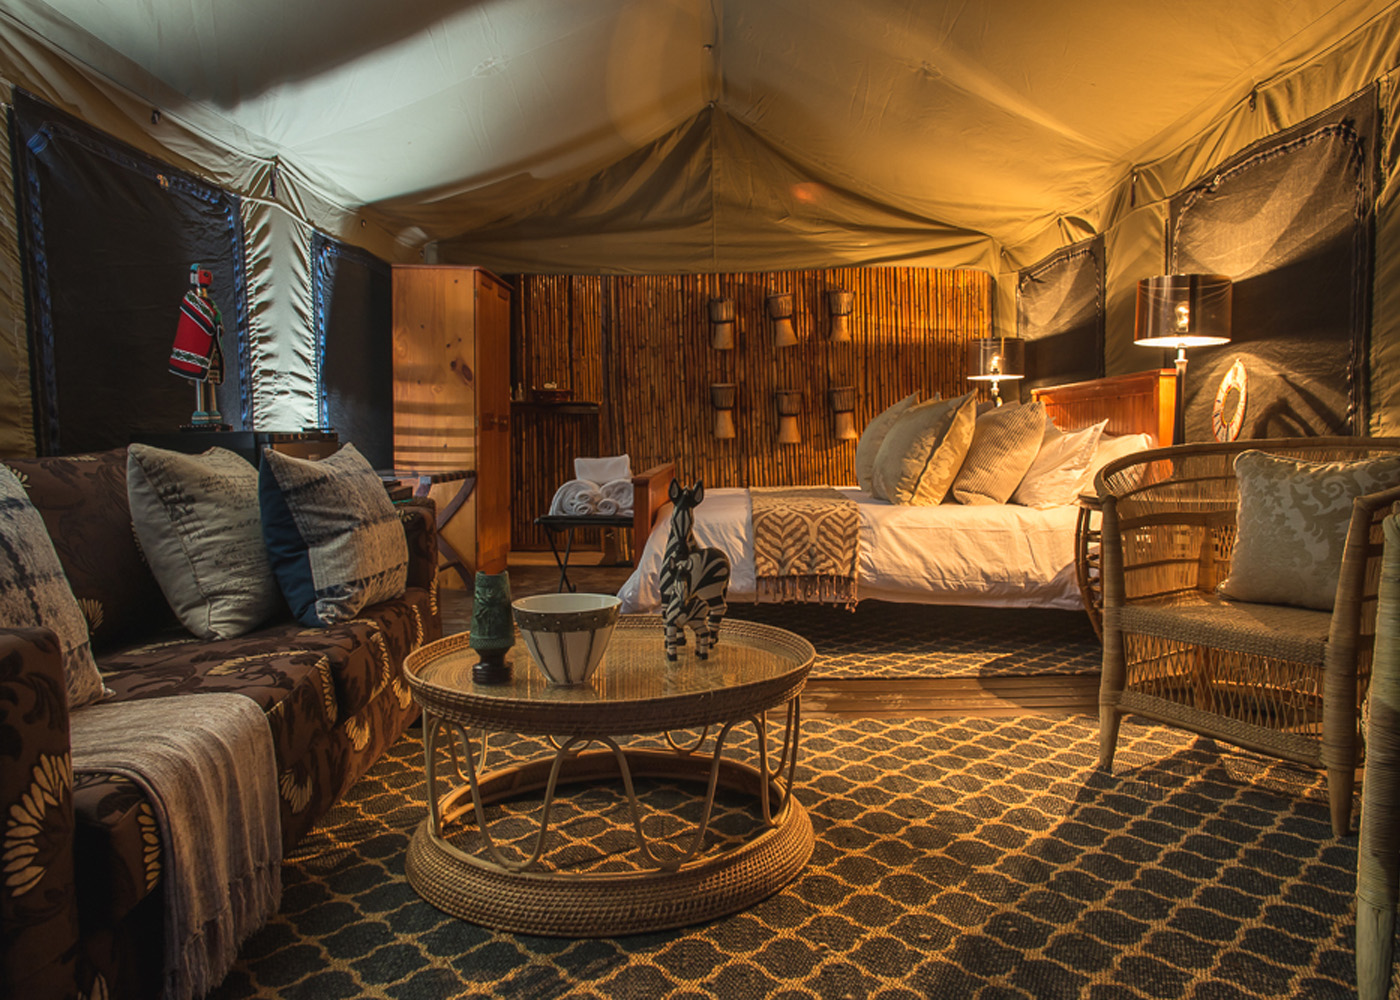 Mobile Tented Camps, Mobile Tented Accommodation, SERVICES Film Industry, Infrastructure , Film Production, Productions Support